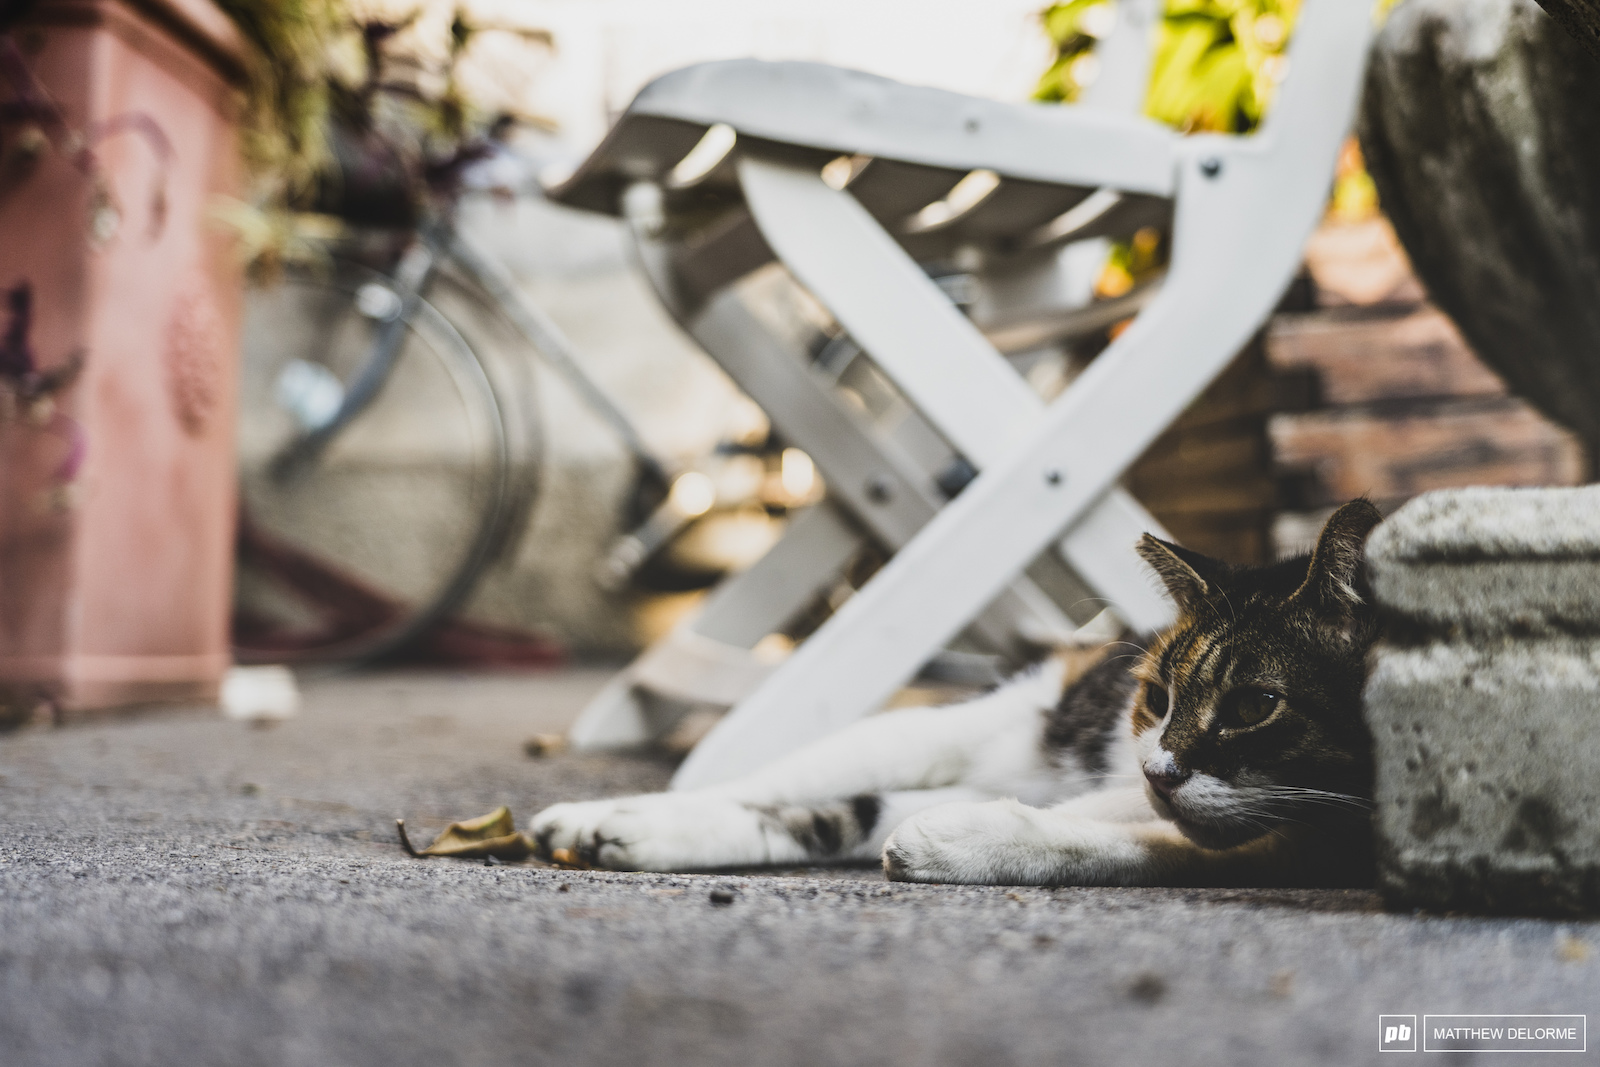 Just a lil old street kitty.